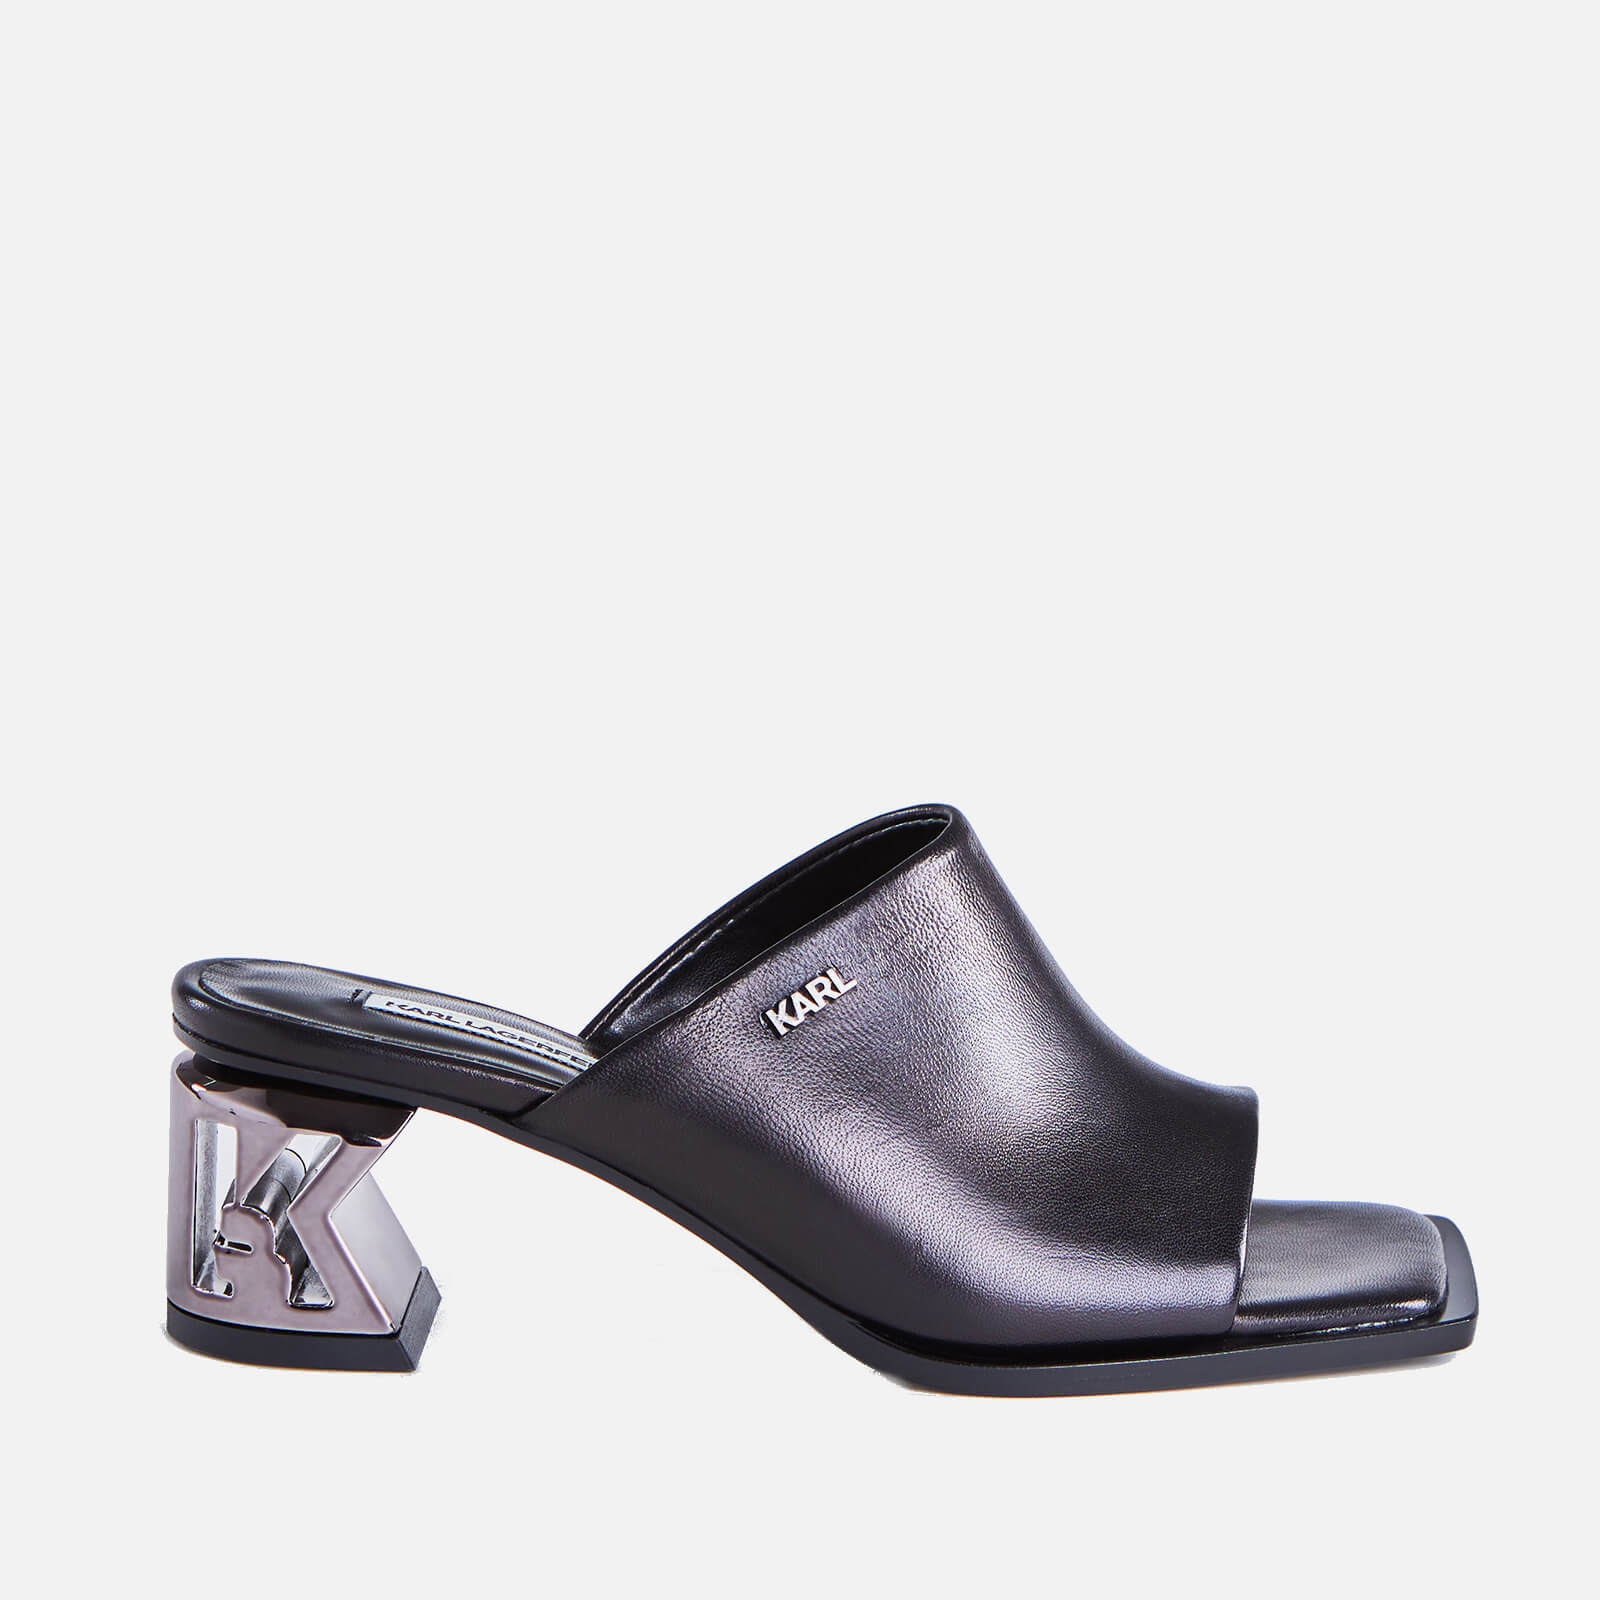 Click to view product details and reviews for Karl Lagerfeld Womens K Blok Leather Square Toe Heeled Mules Black Uk 3.